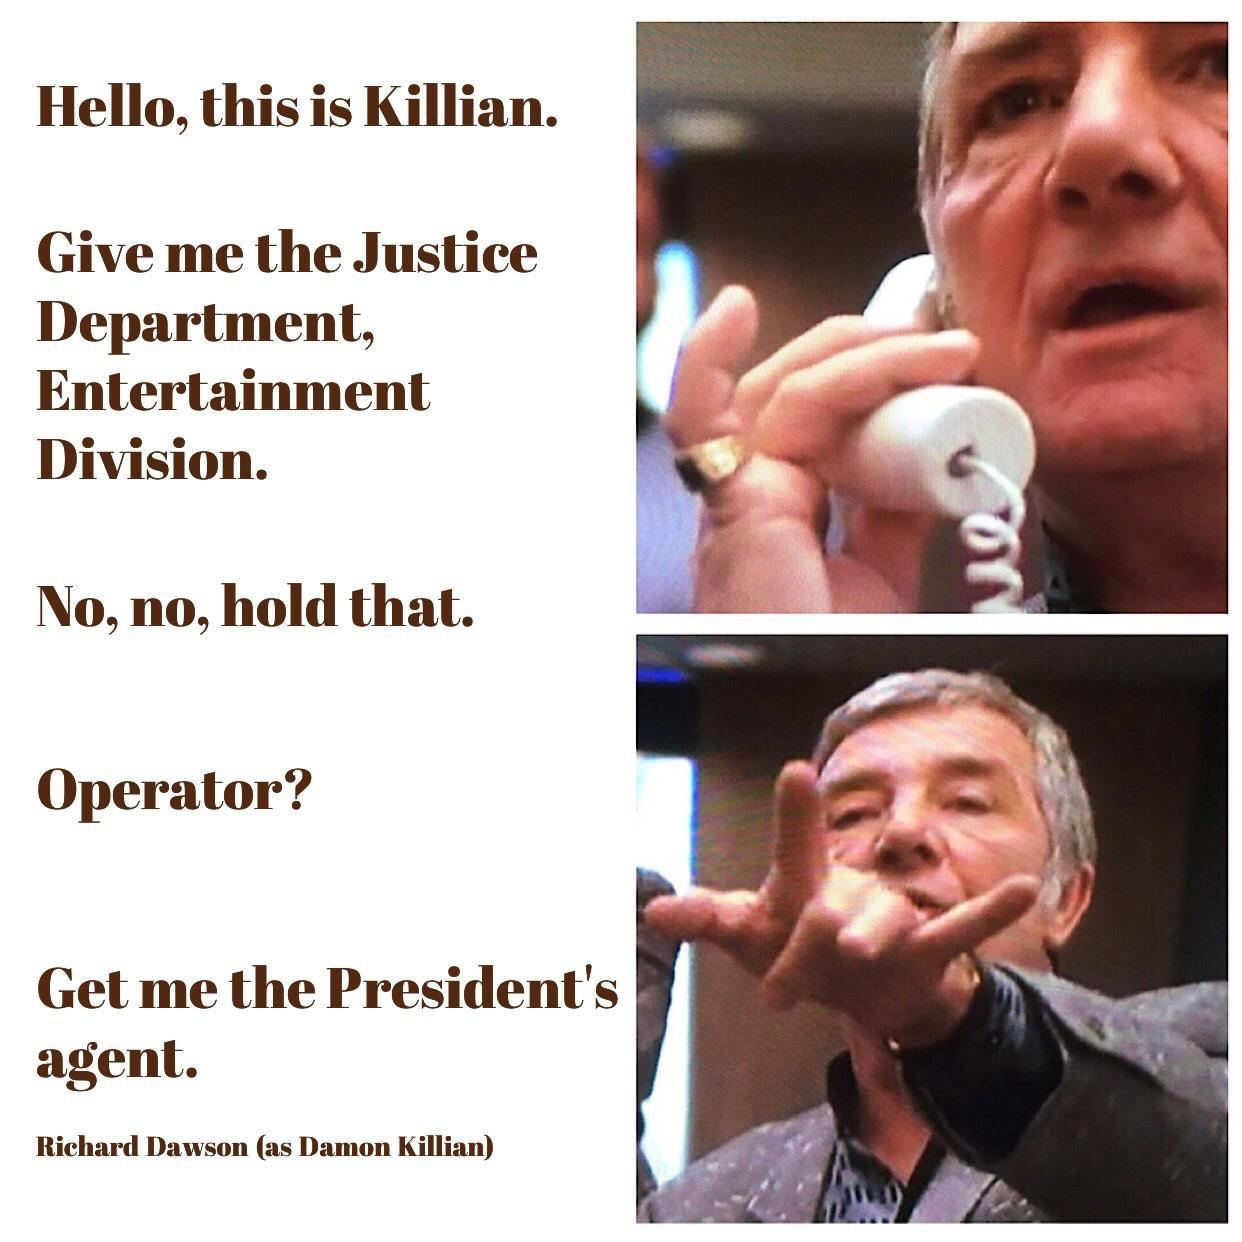 """Hello, this is Killian. Give me the Justice Department, Entertainment Division…"" – Richard Dawson (as Damon Killian in The Running Man) [1242×1242]"